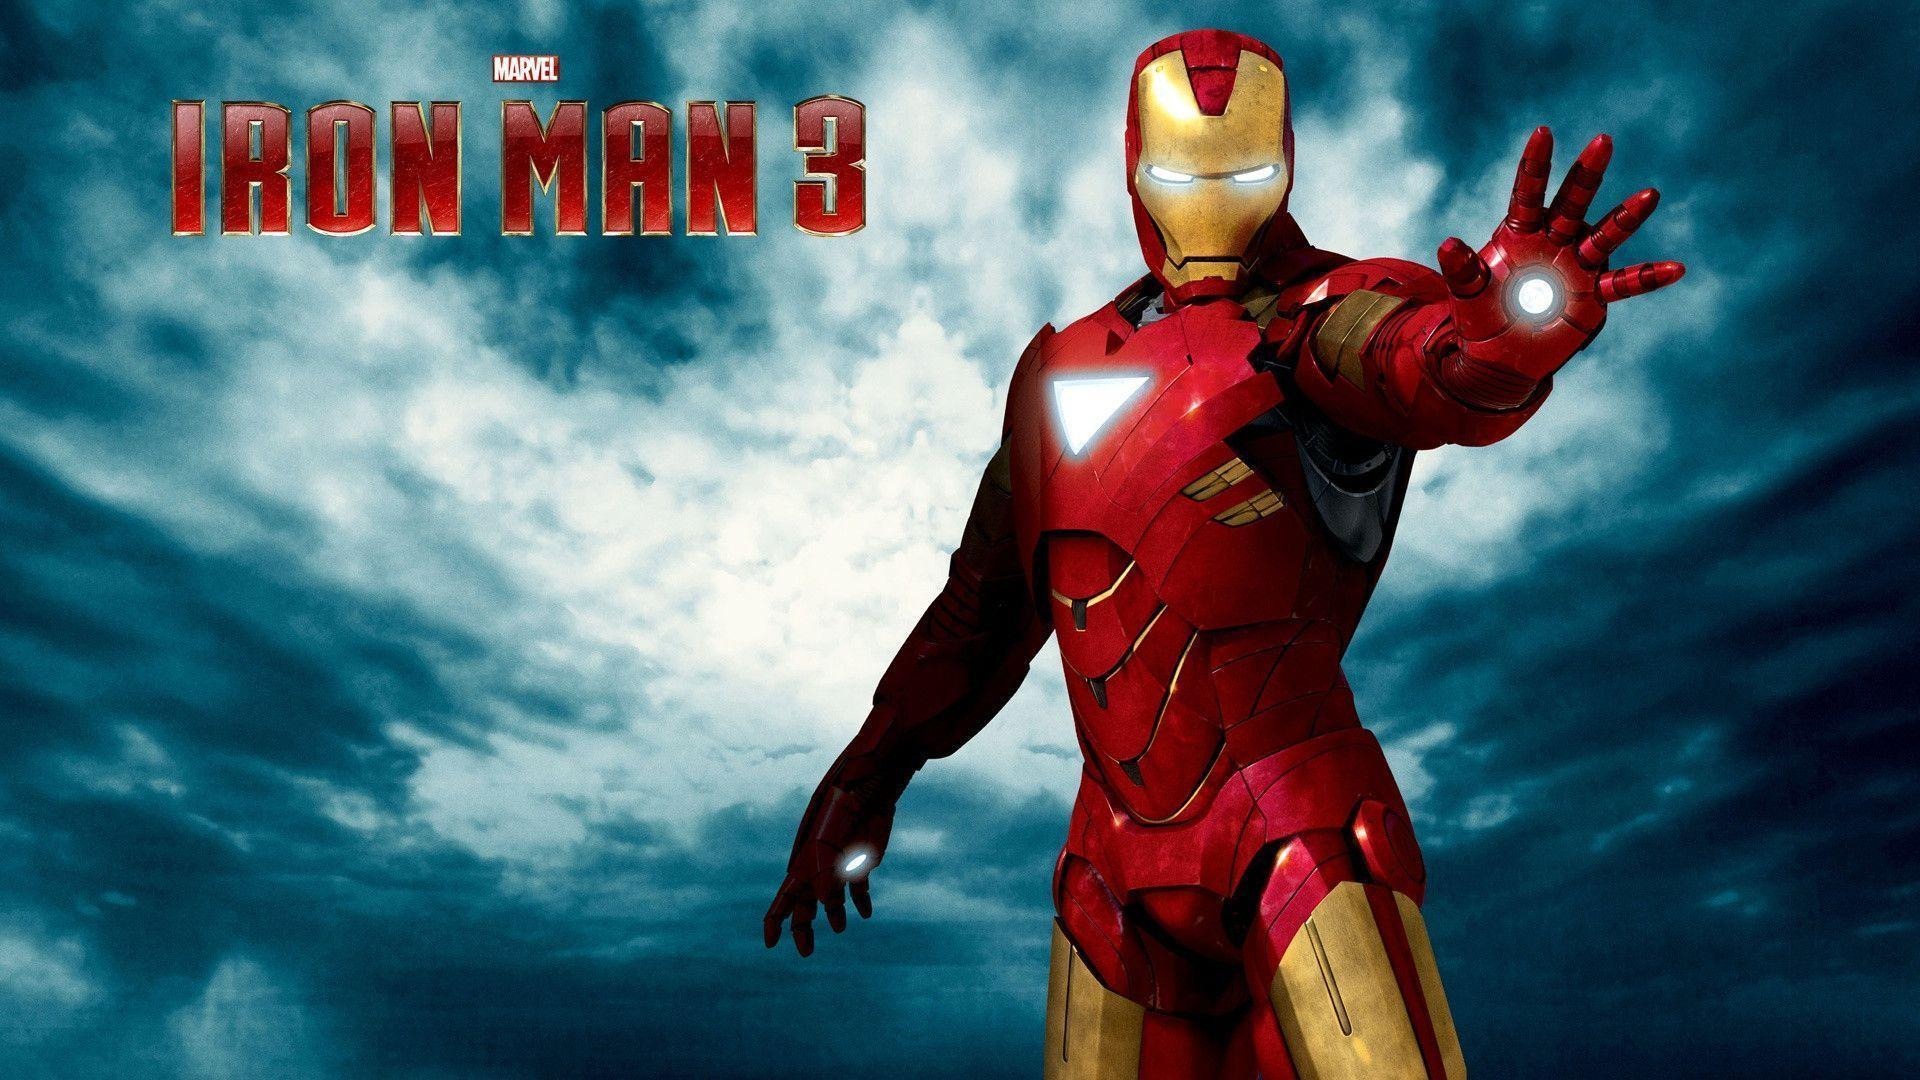 Iron Man 3 Wallpapers | HD Wallpapers